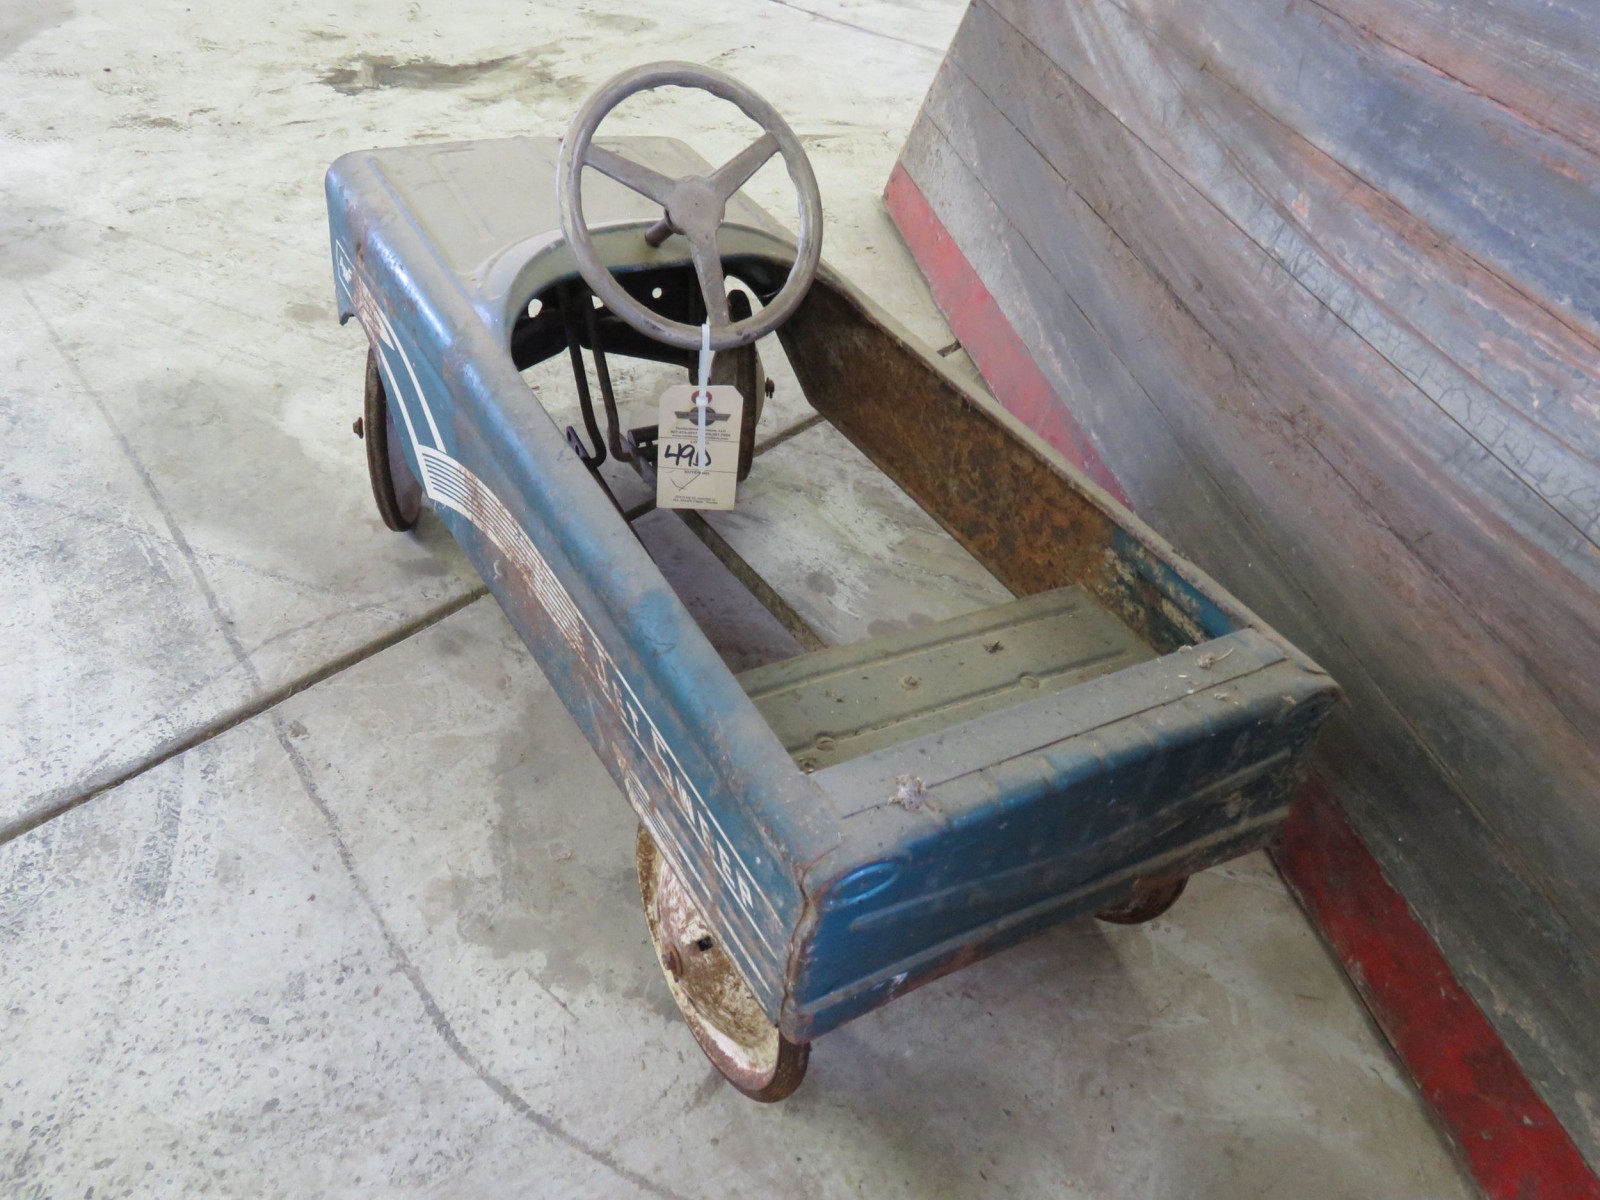 AMF Jet Sweep Vintage Pedal Car - Image 3